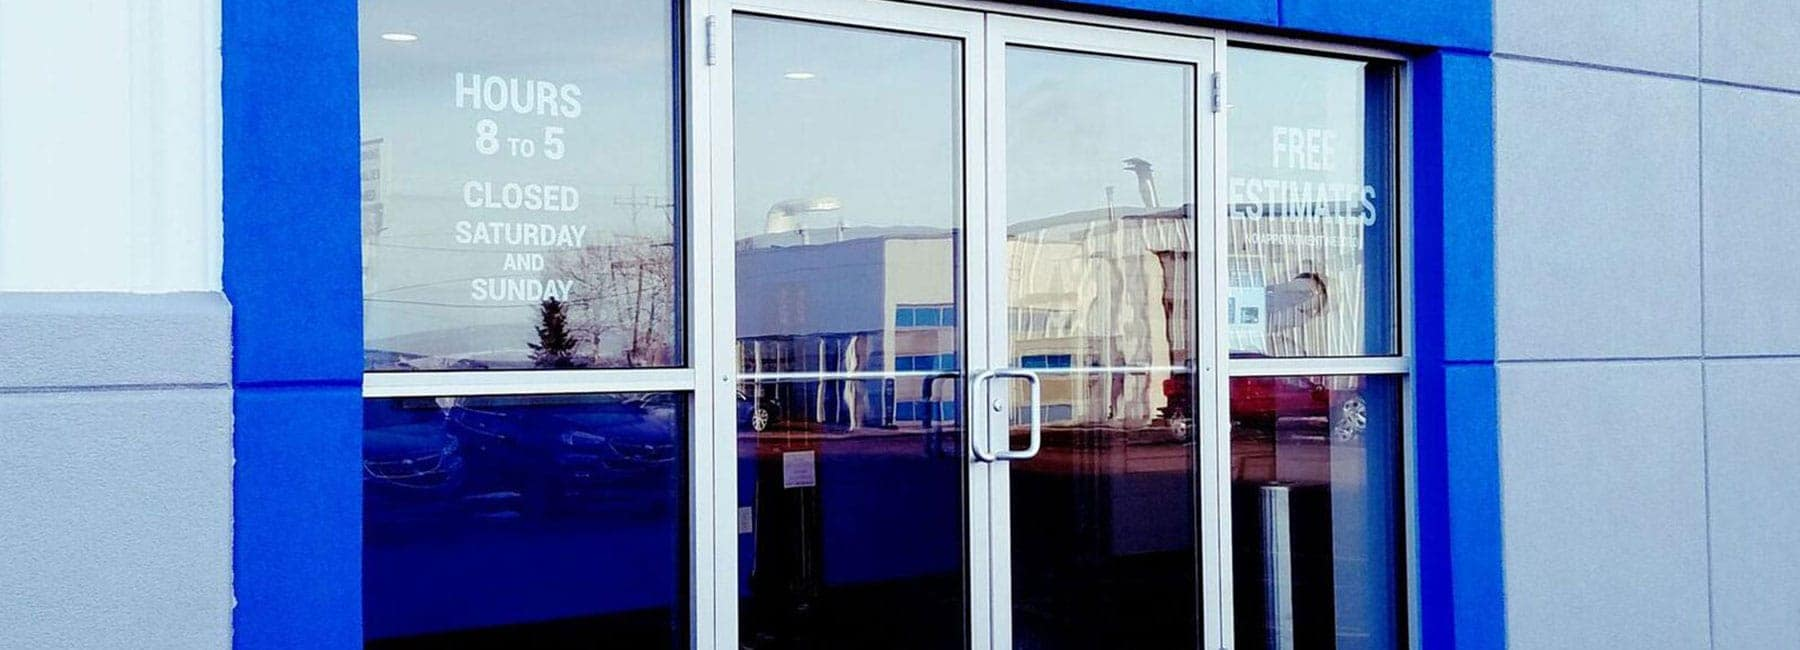 The front door of the collision center